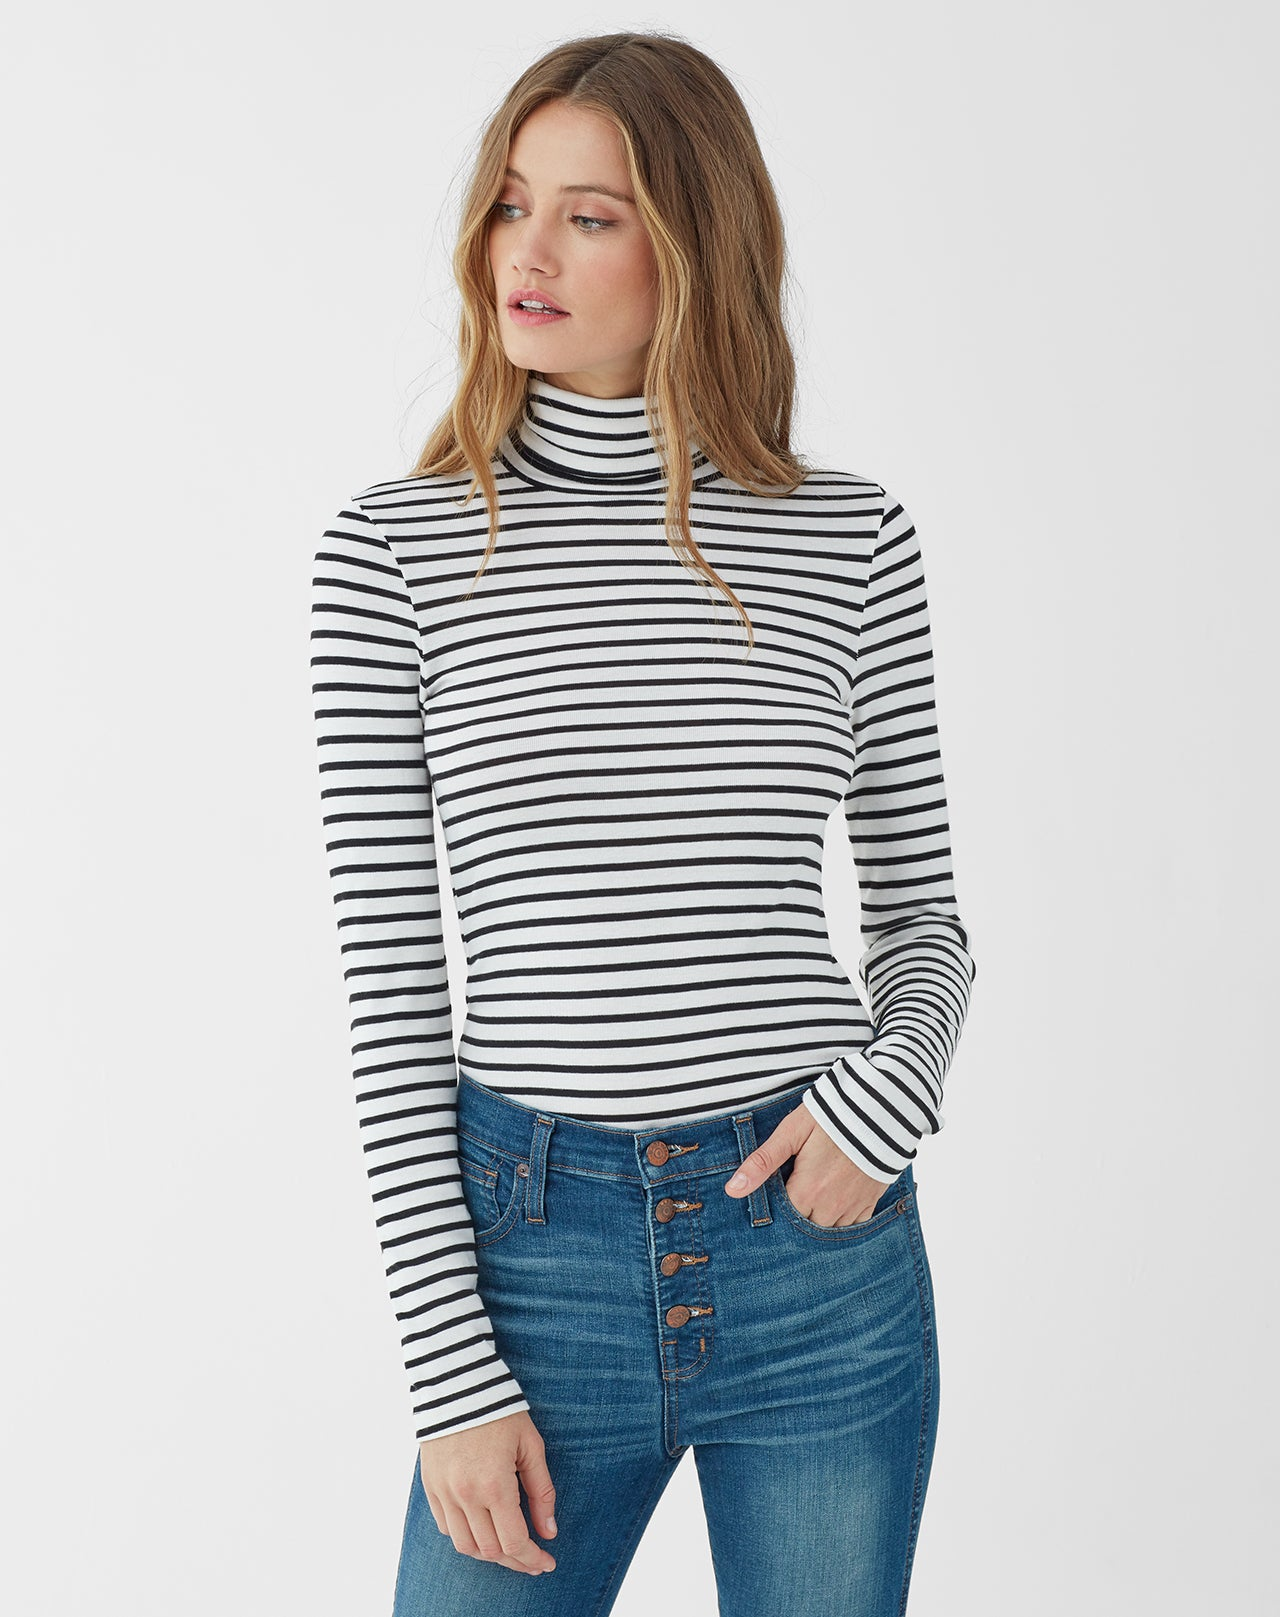 Splendid Women's Black Venice Stripe Turtleneck